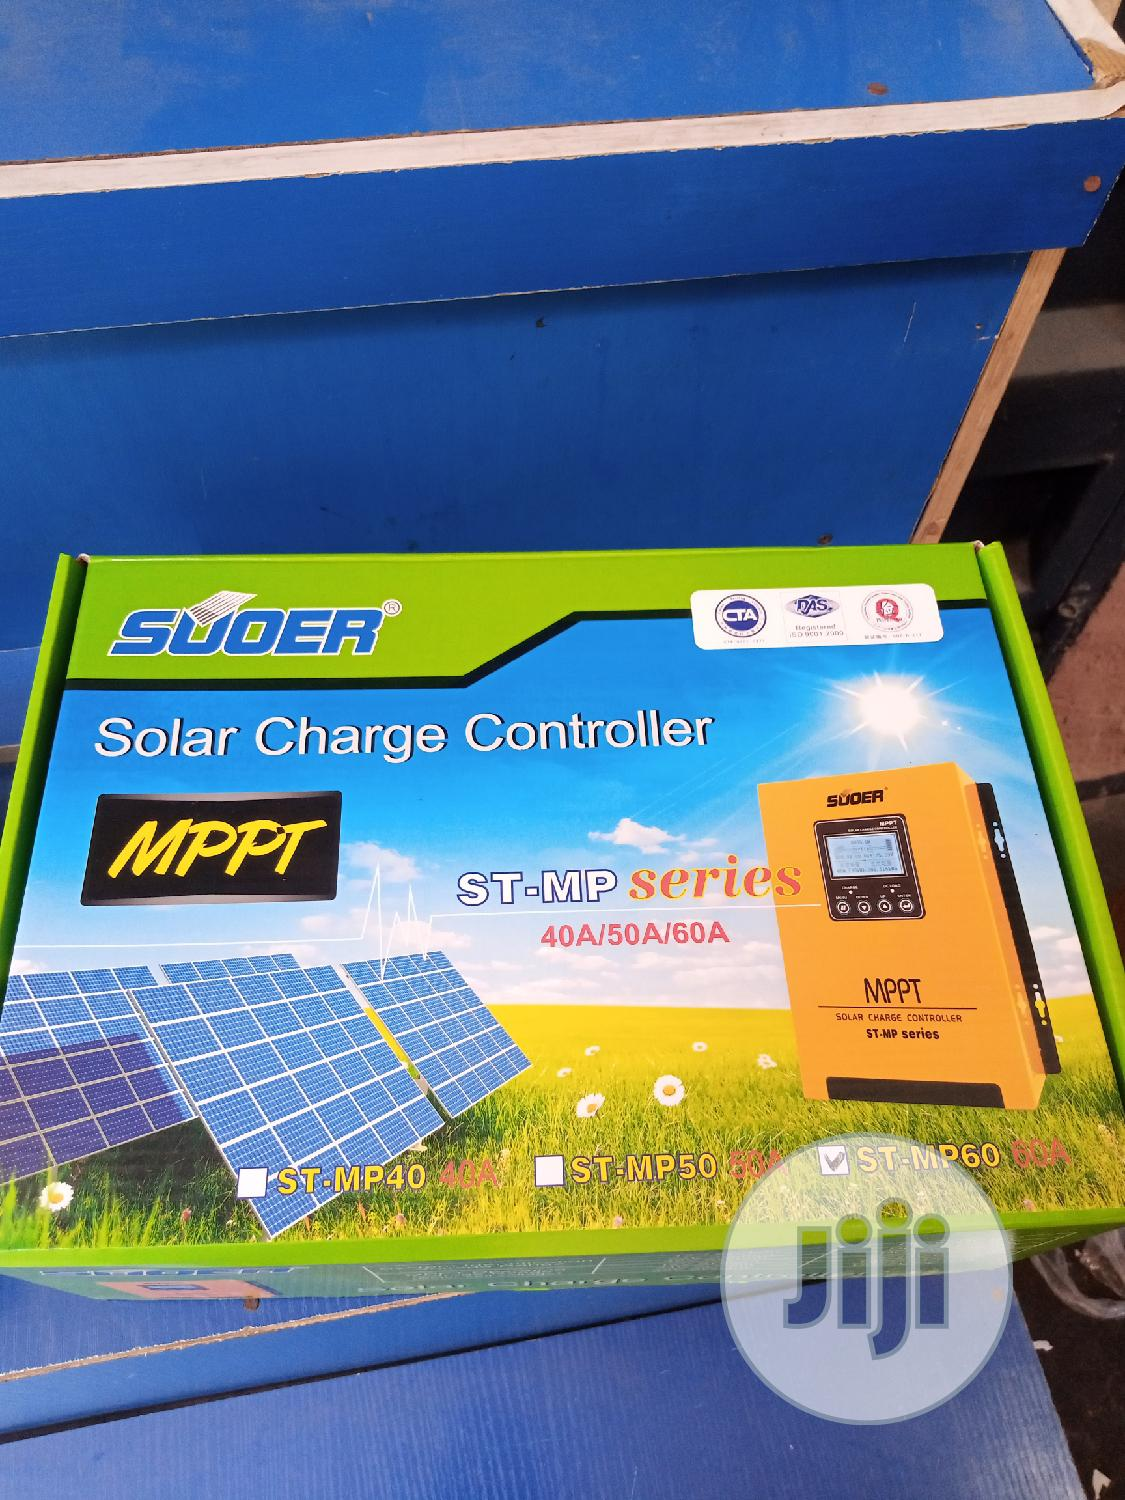 60amps Suoer Mppt Controller Available.